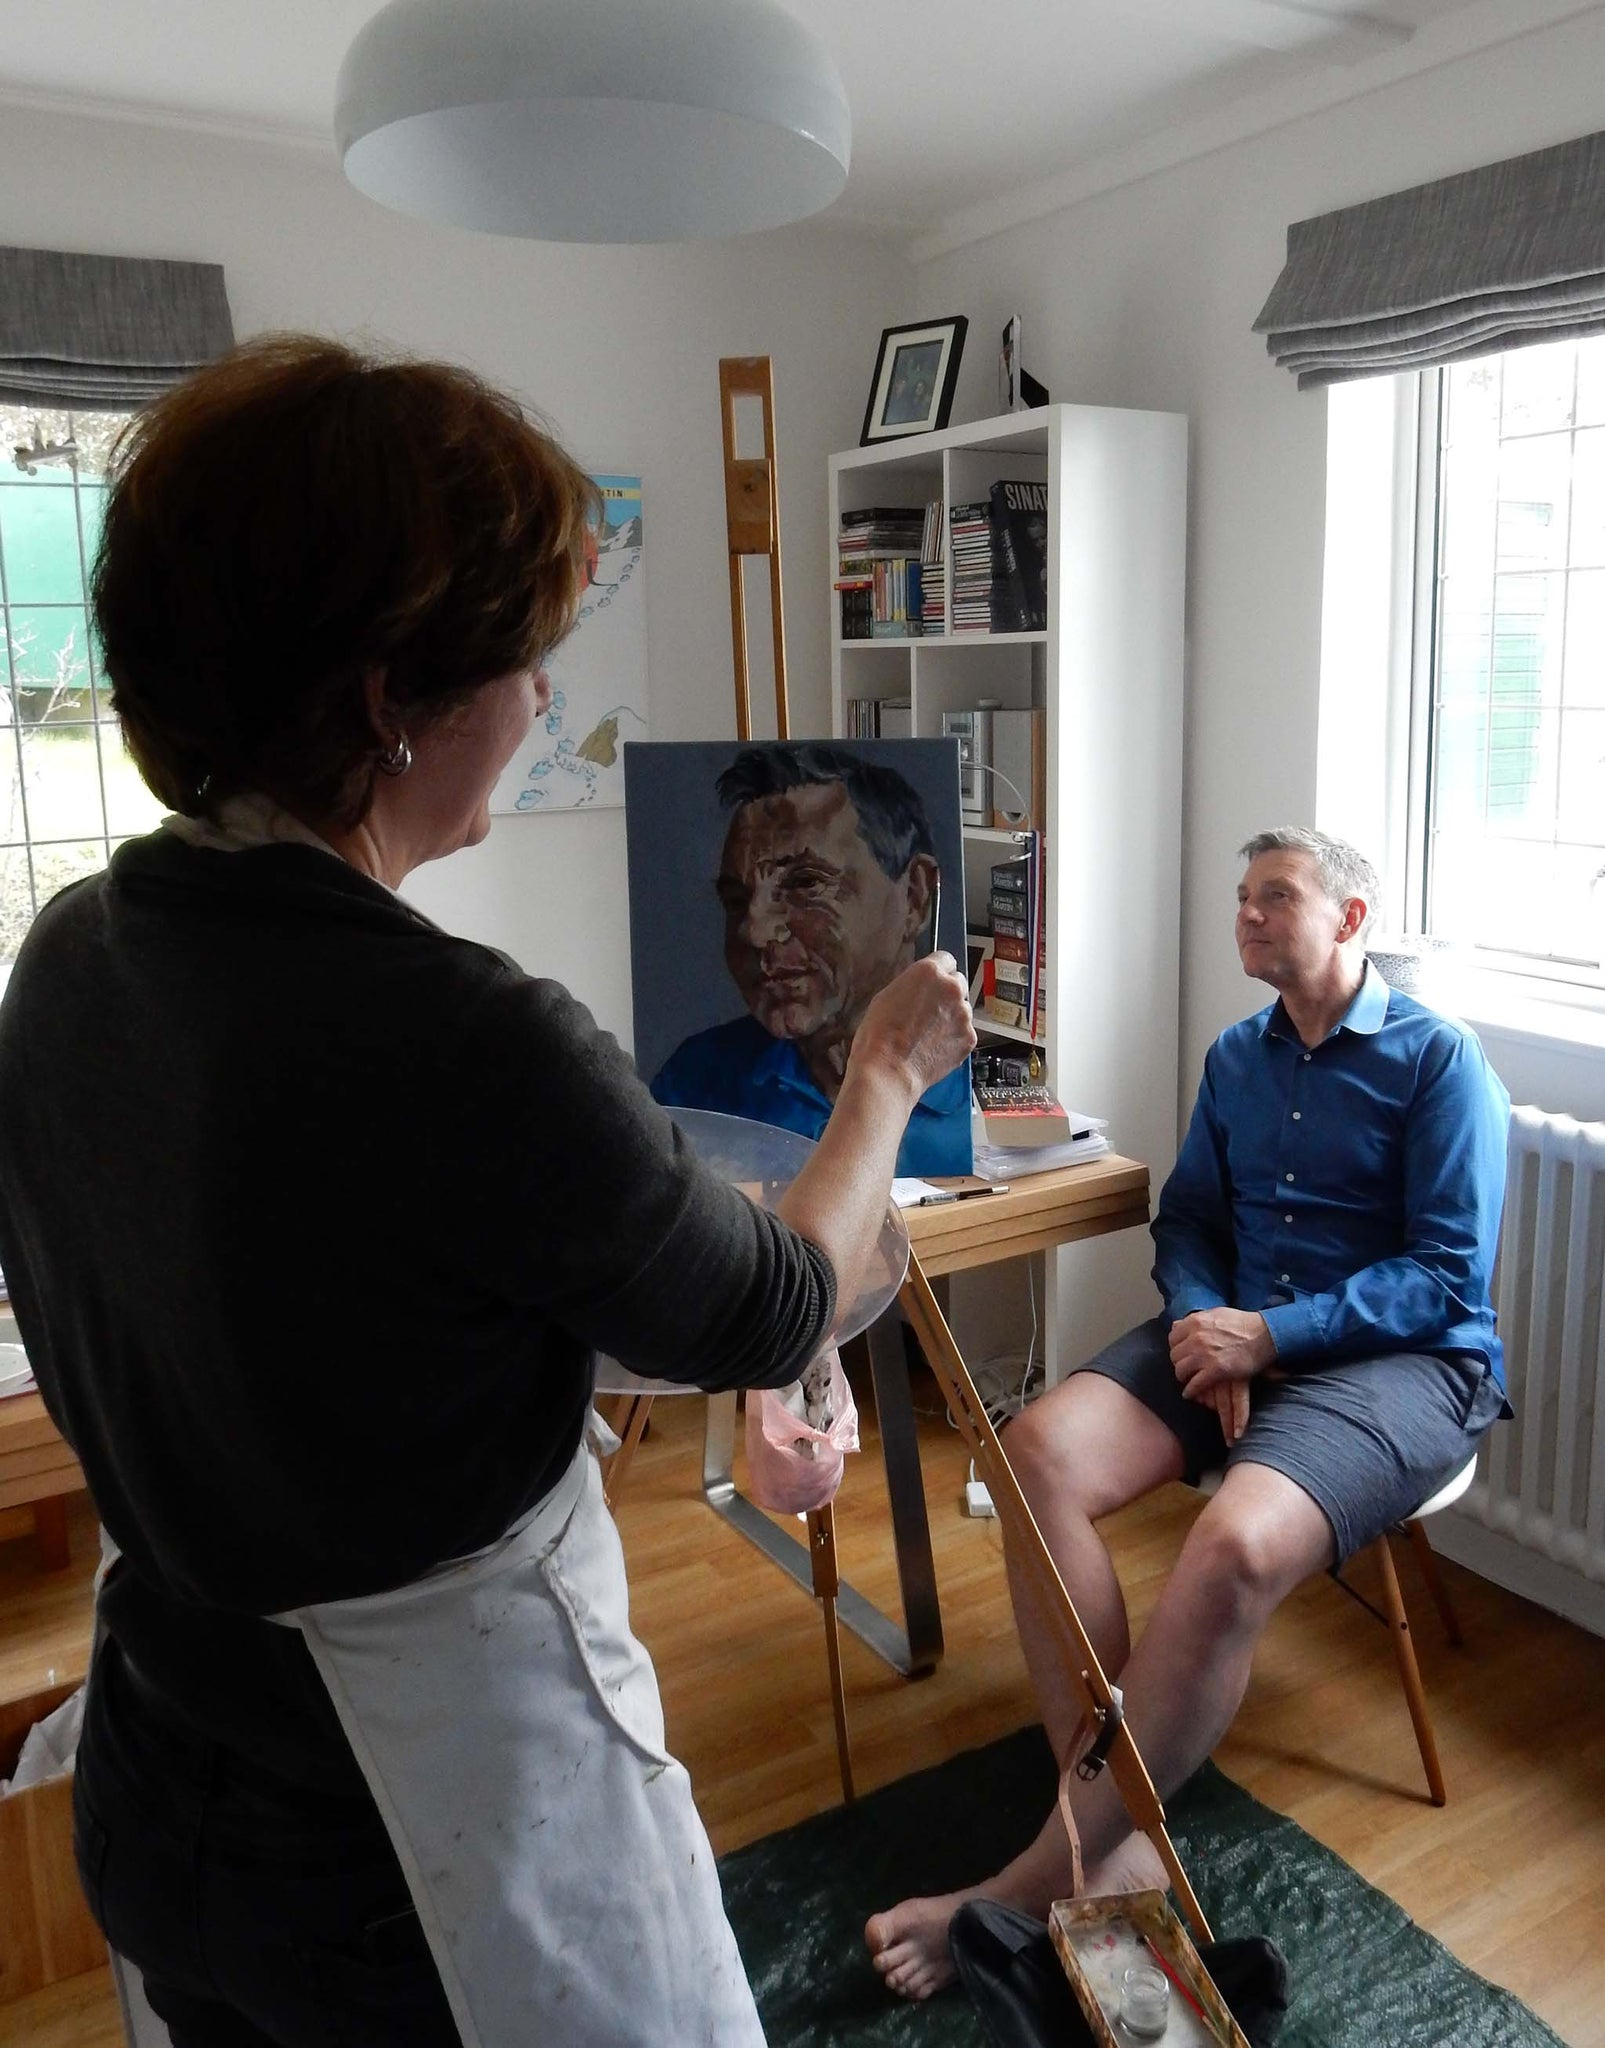 Stella Tooth painting a commissioned portrait of Martin Le Jeune in oils at his home.